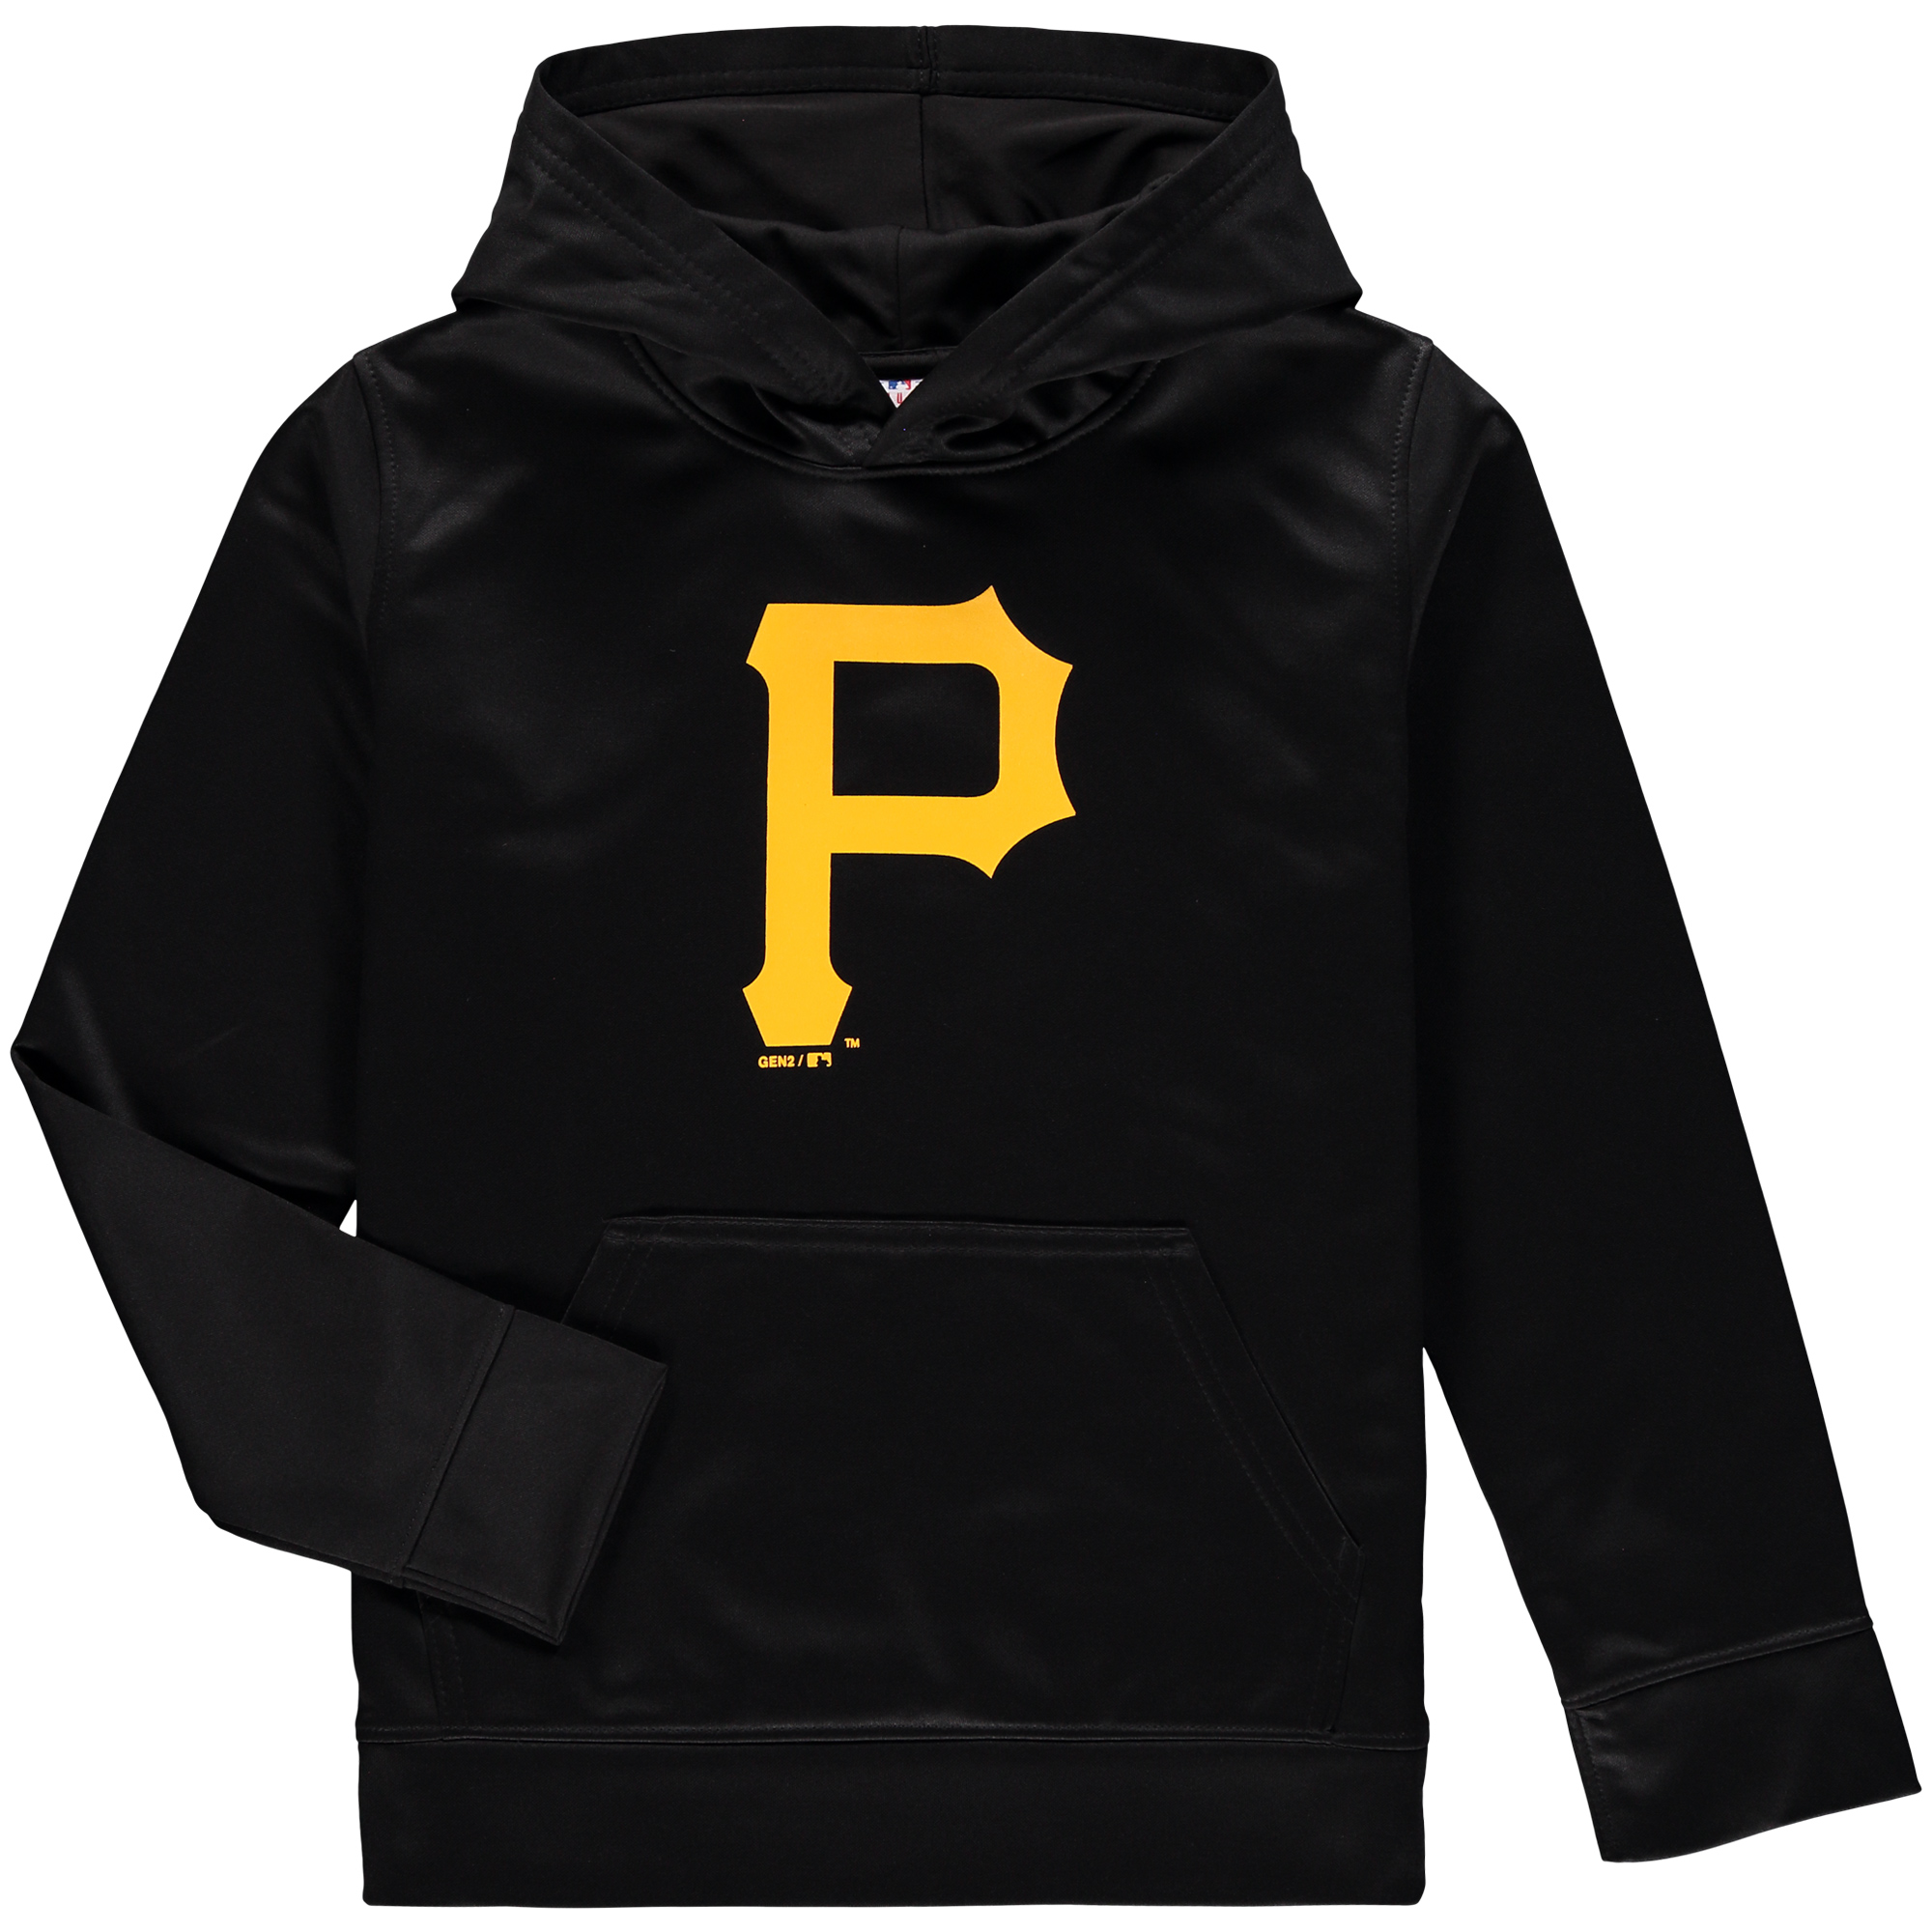 Pittsburgh Pirates Youth Team Logo Fleece Pullover Hoodie - Black